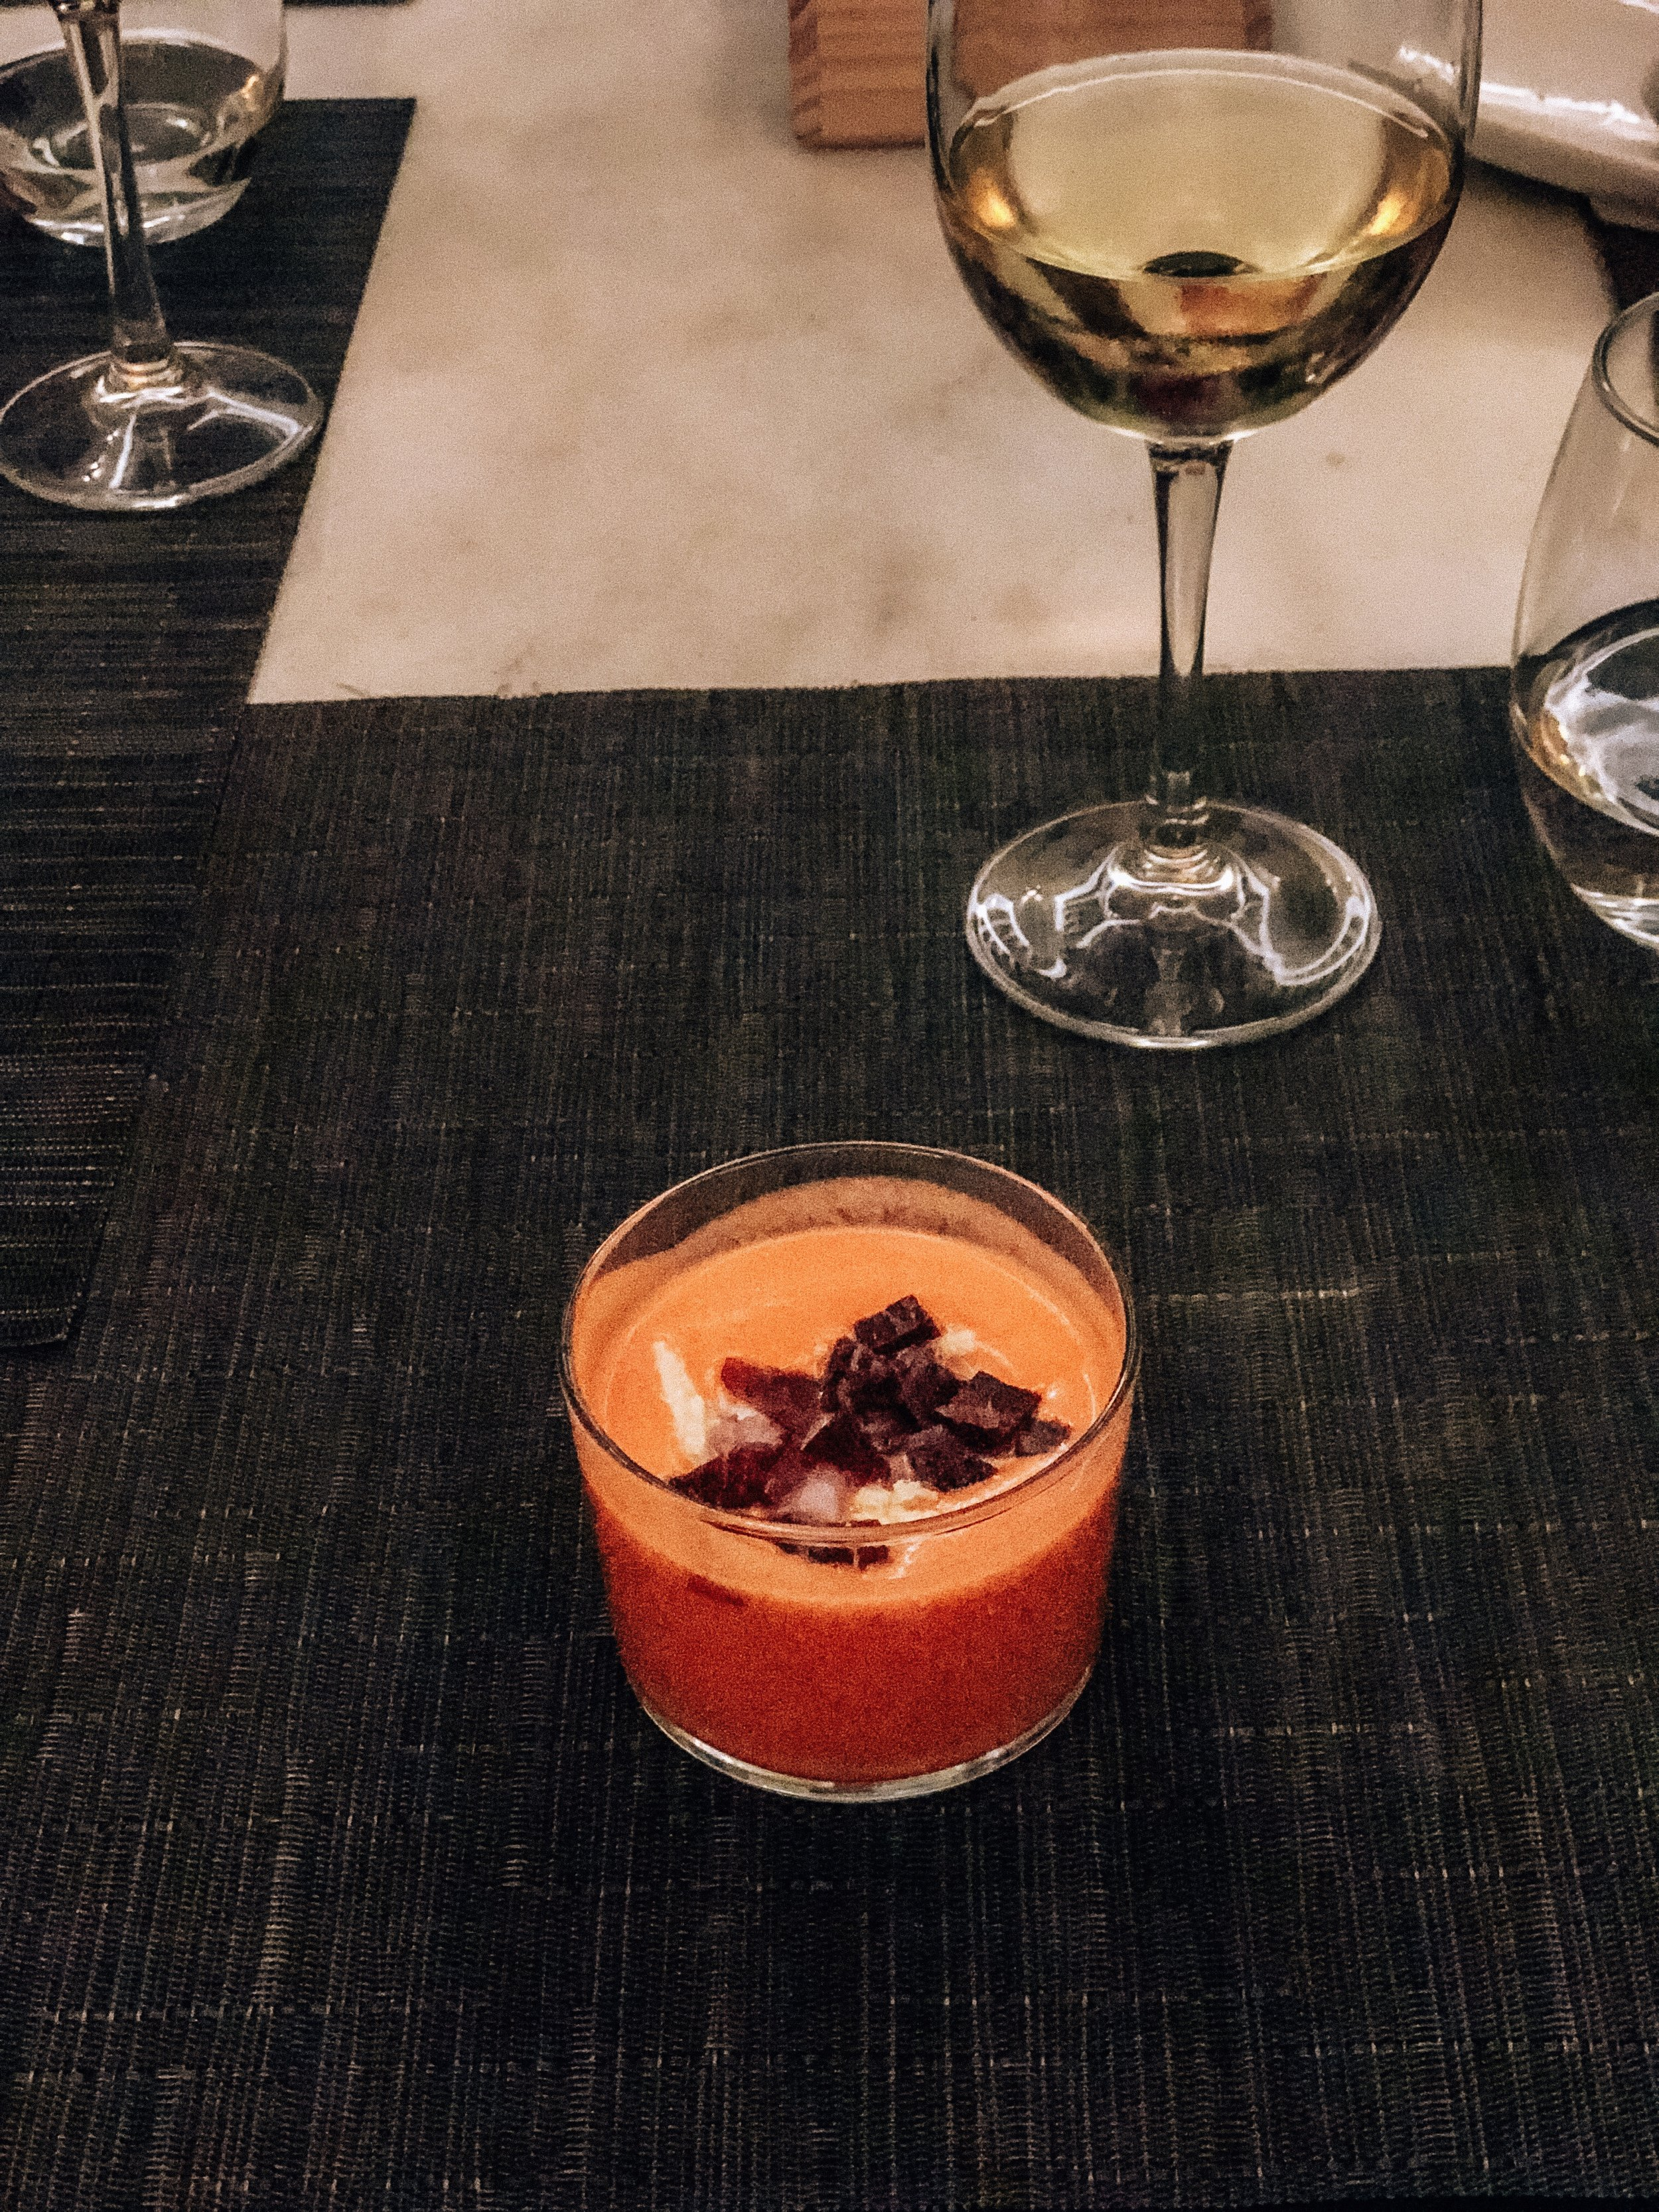 Discovered one of my favorite dishes of all times! Salmorejo, a cold tomato soup and oh so delicious!